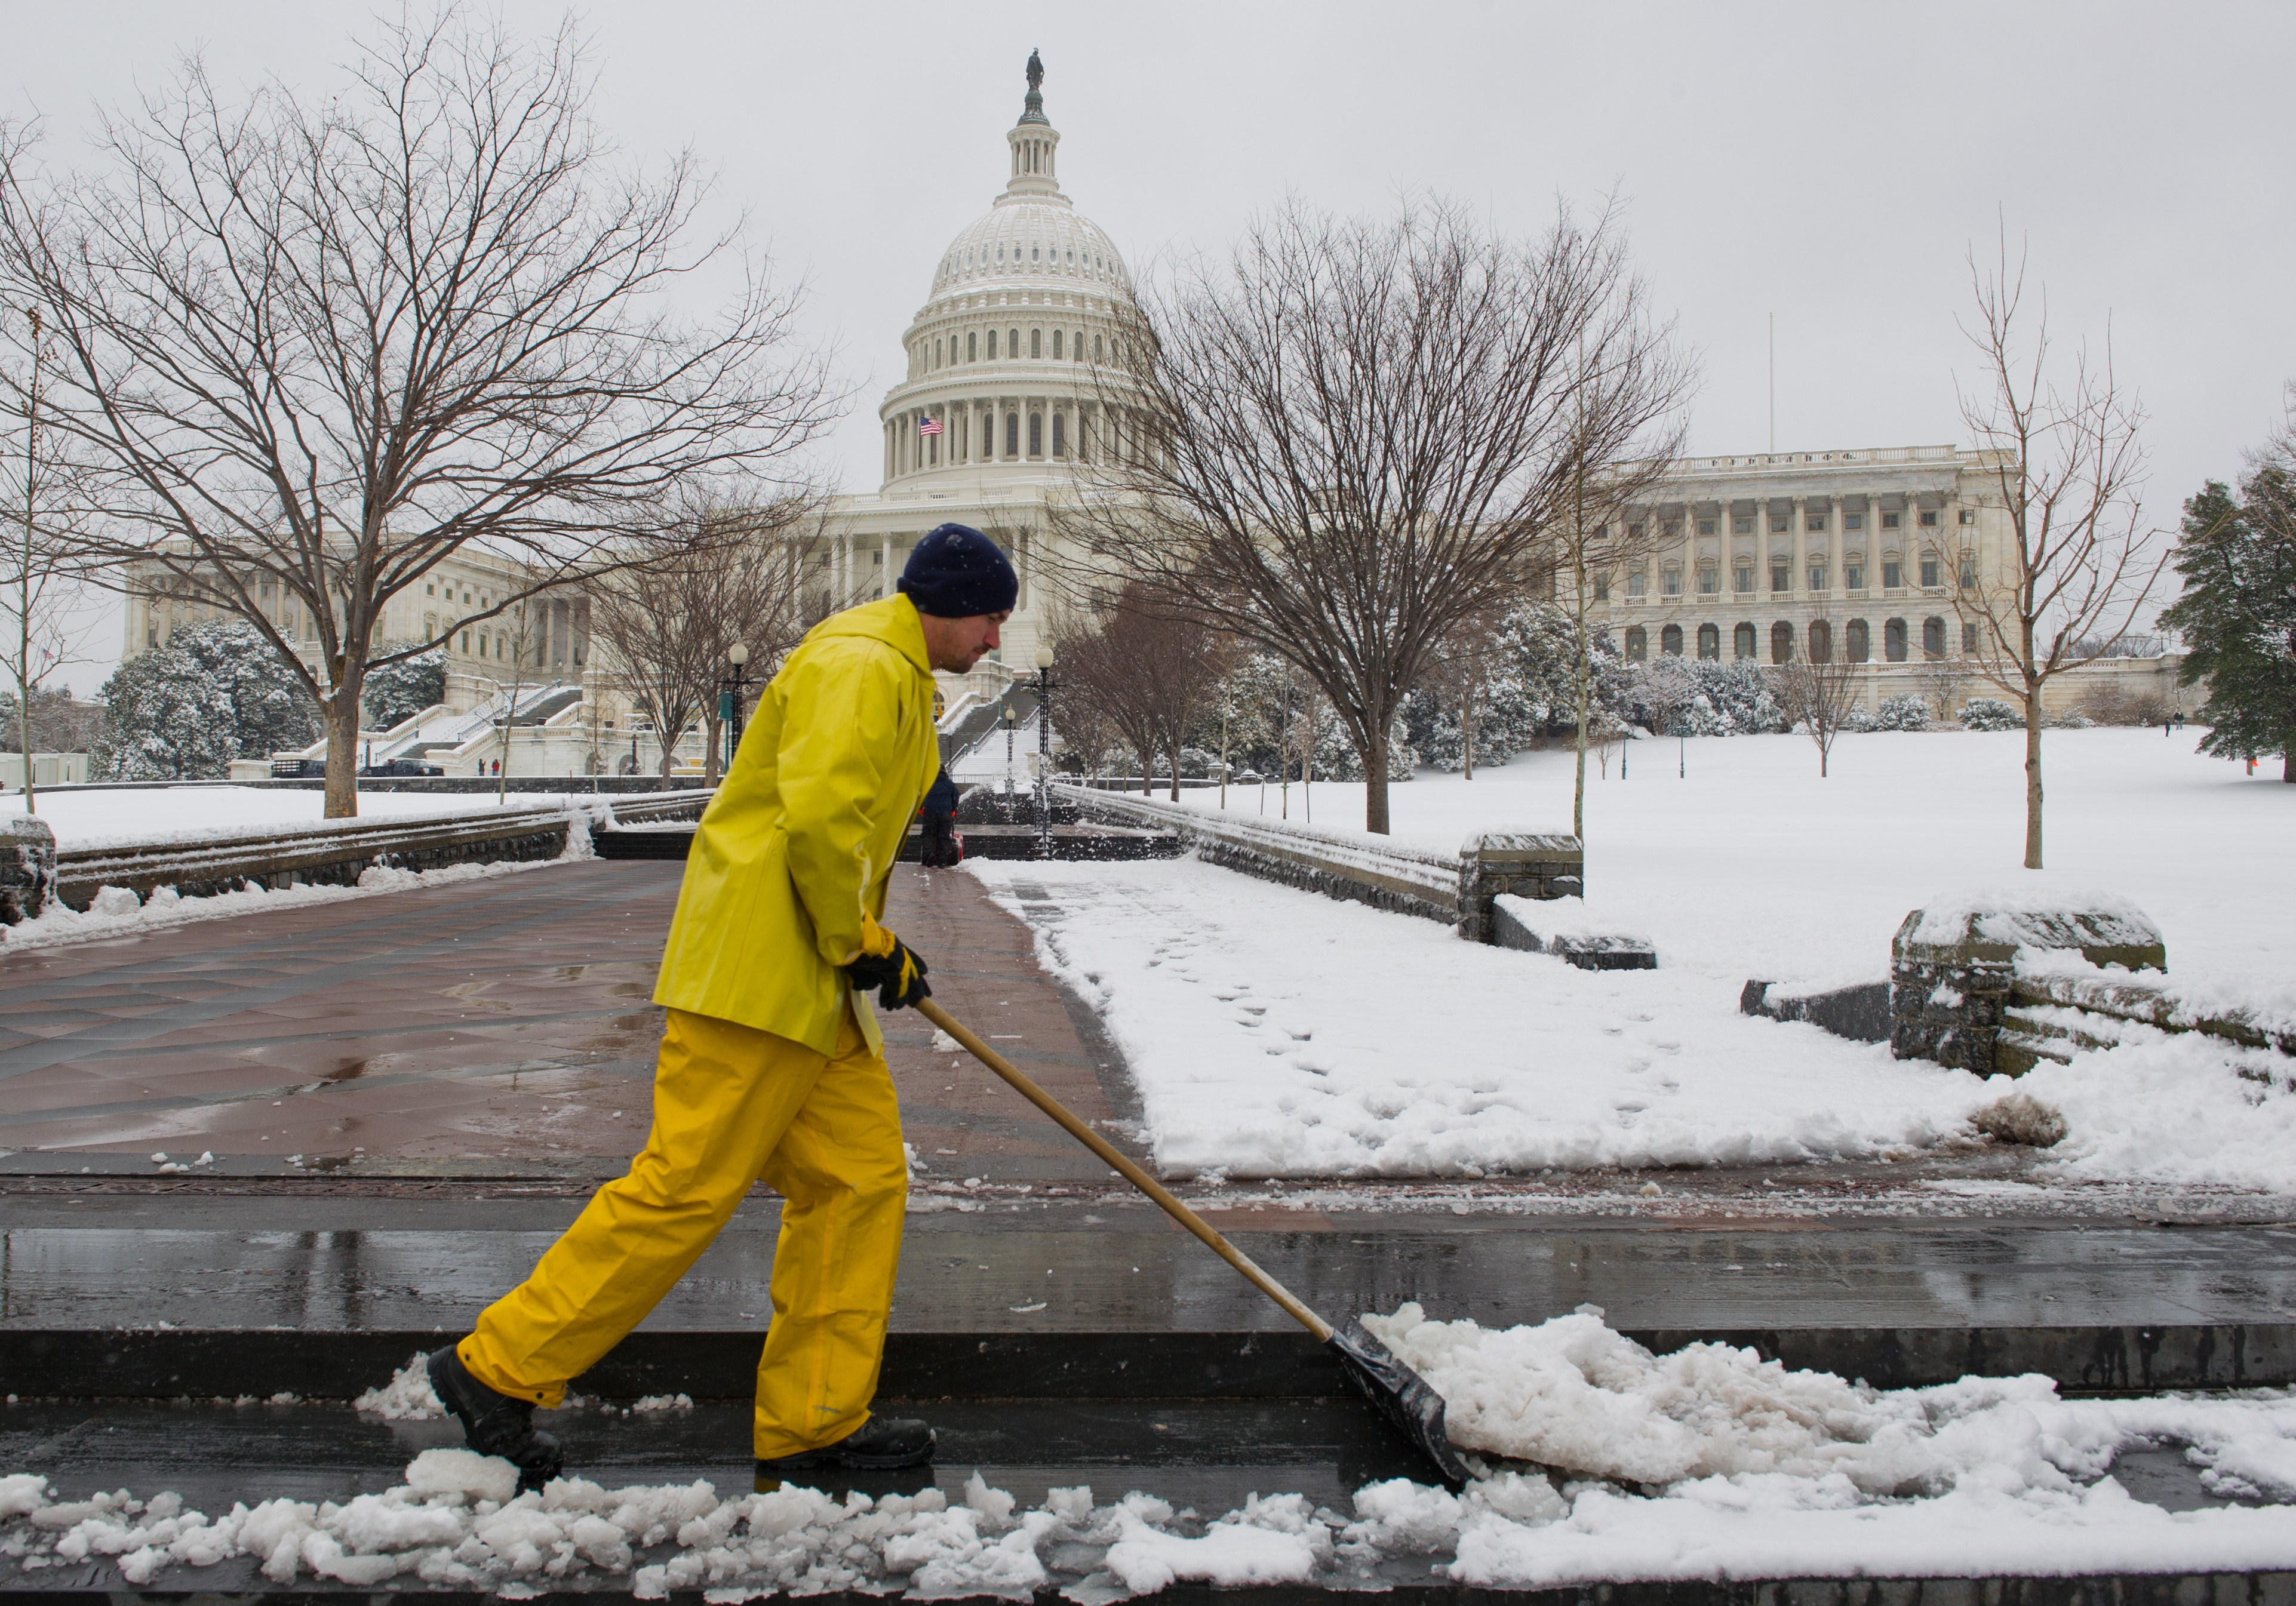 A worker shovels snow from the walkways at the U.S. Capitol in Washington, DC March 17, 2014 the morning after yet another snow storm.